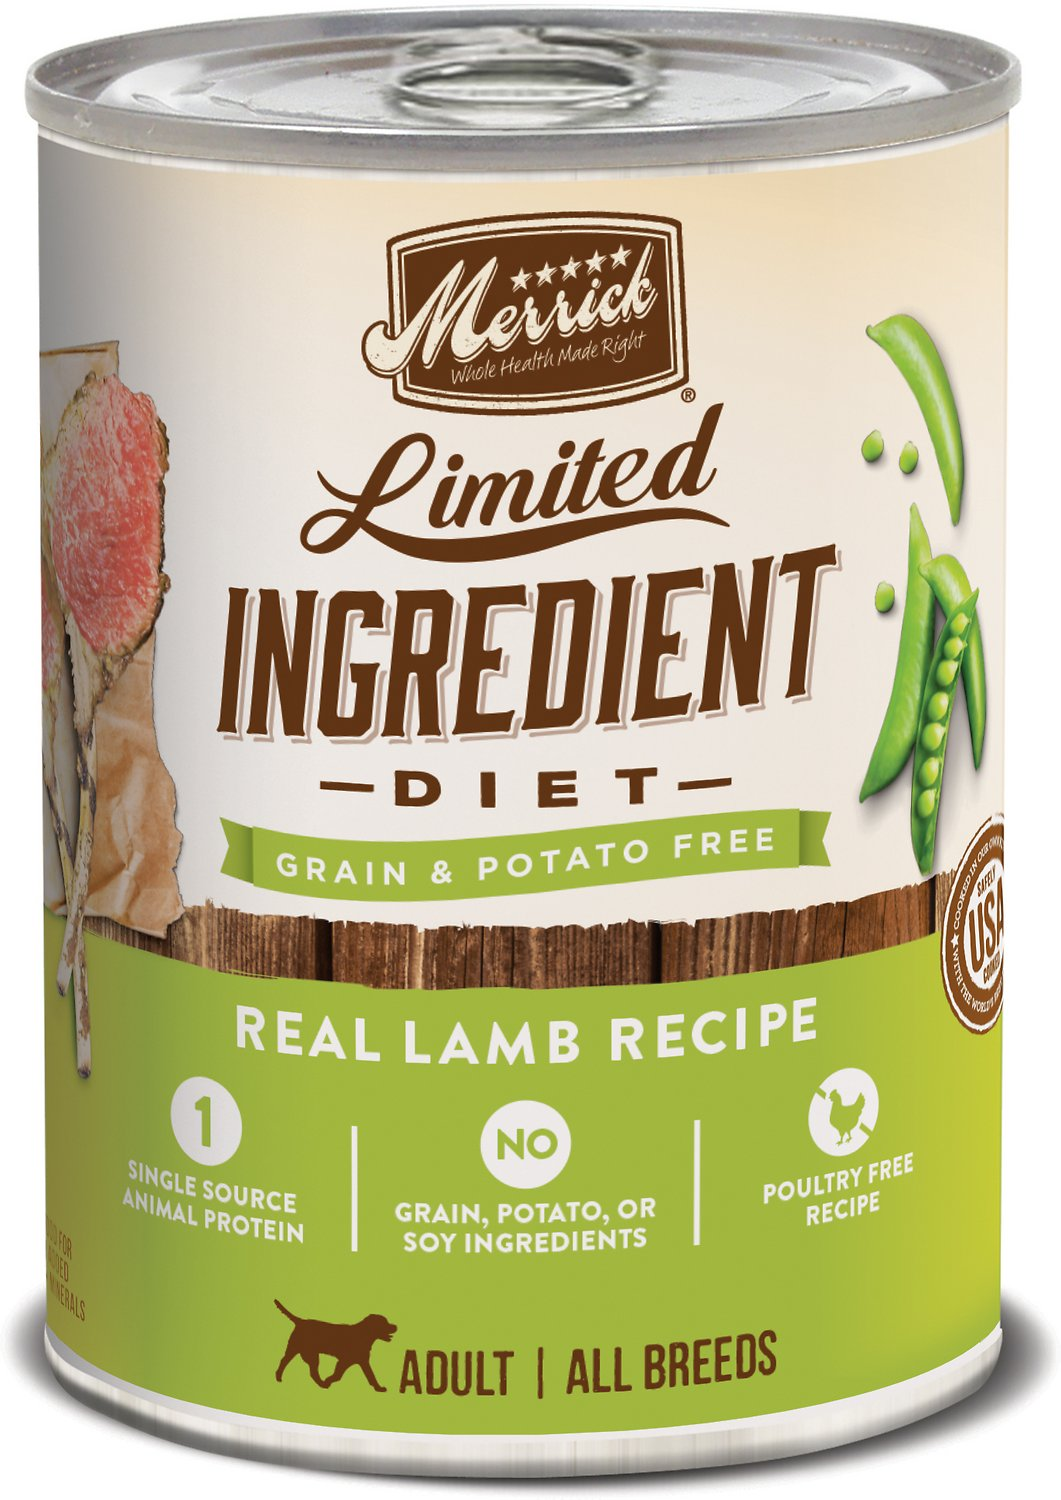 Merrick Limited Ingredient Diet Lamb Canned Dog Food (12.7oz)